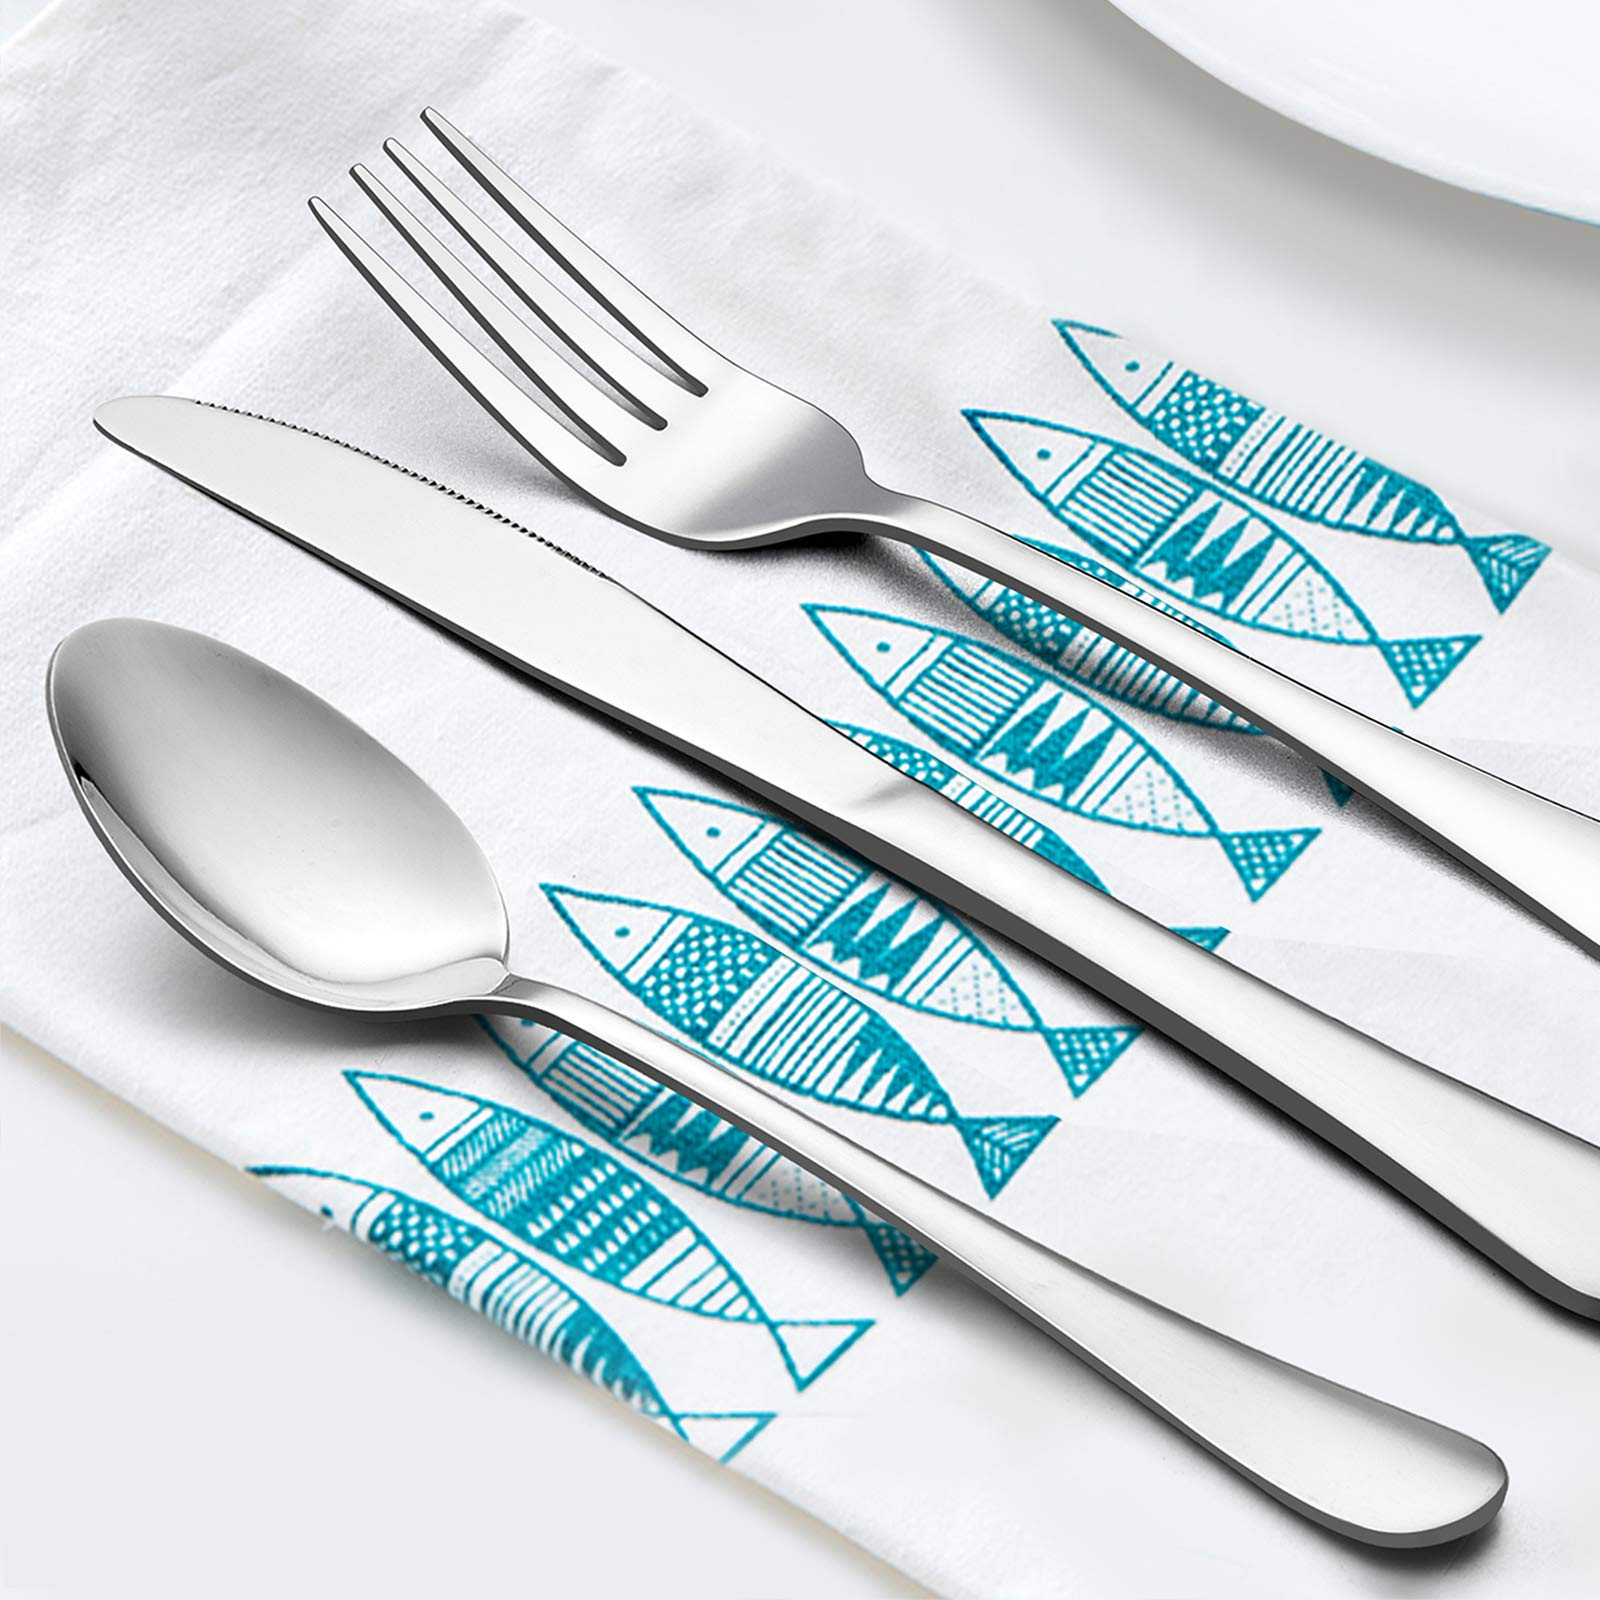 60-Piece Silverware Flatware Set for 12, LIANYU Stainless Steel Cutlery Eating Utensils Set, Kitchen Restaurant Party Tableware, Mirror Finished, Dishwasher Safe by LIANYU (Image #2)